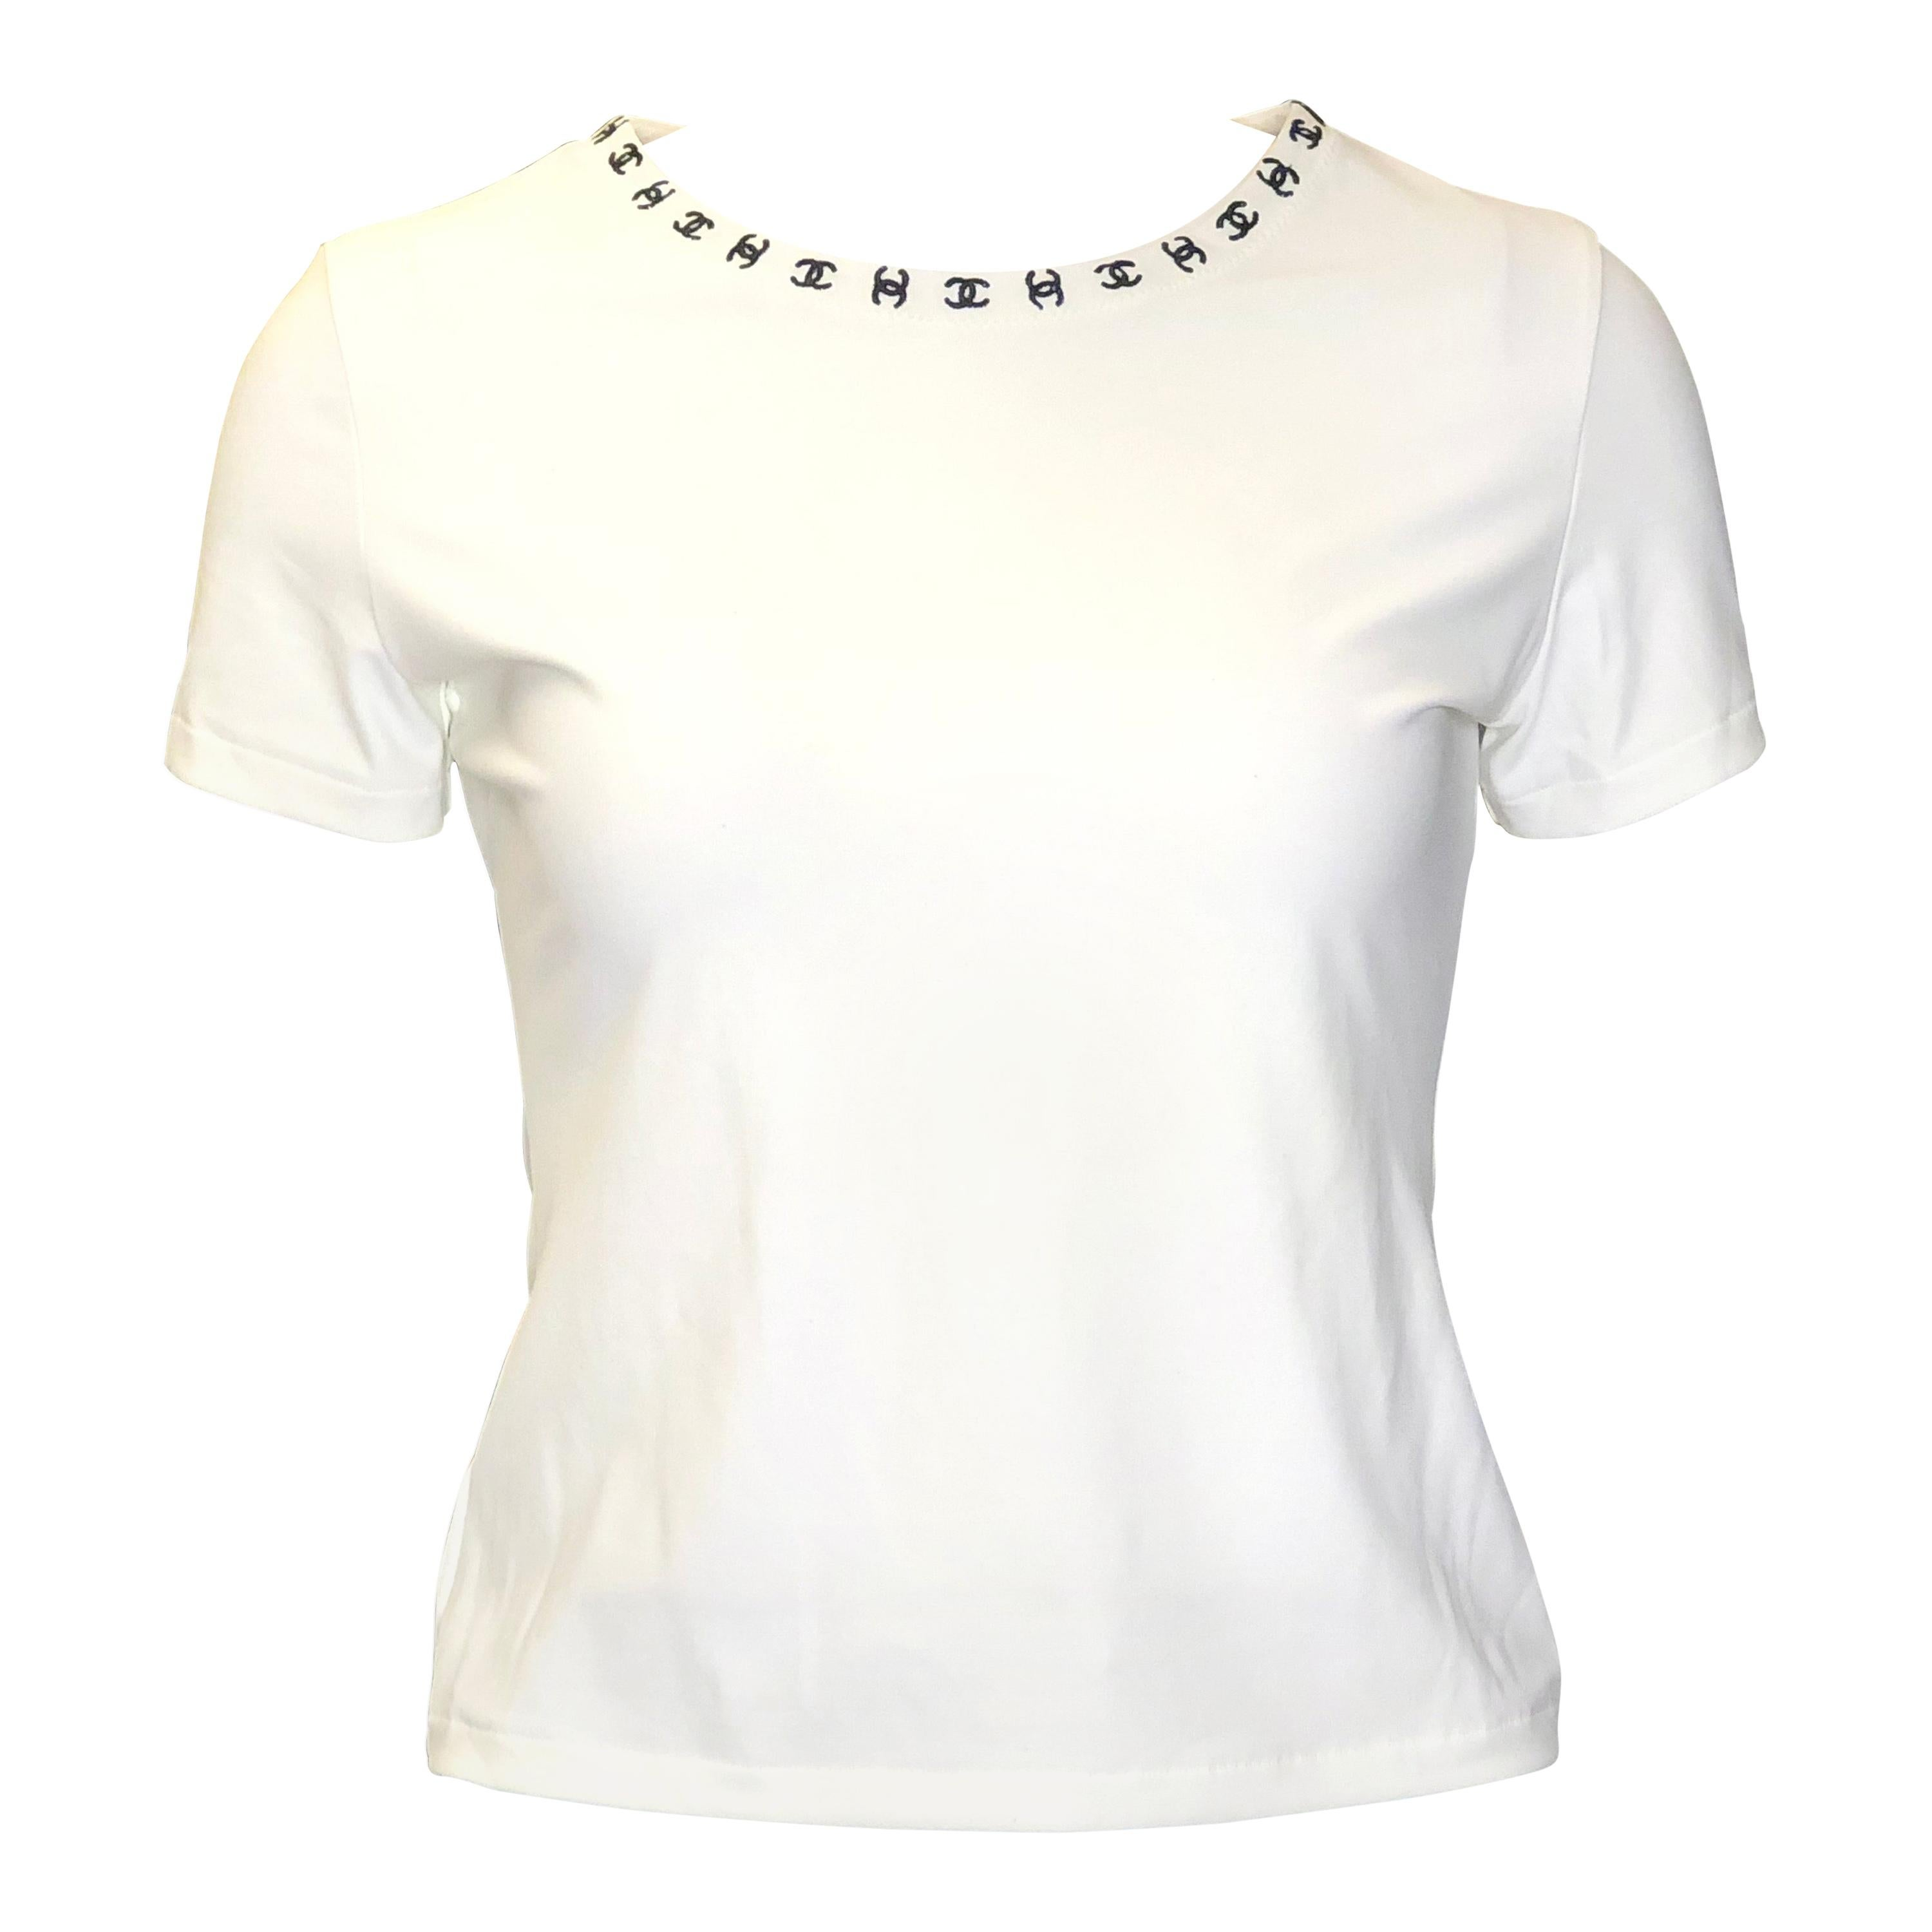 """Vintage Chanel White """"CC"""" Logo Embroidered Short Sleeves Top"""